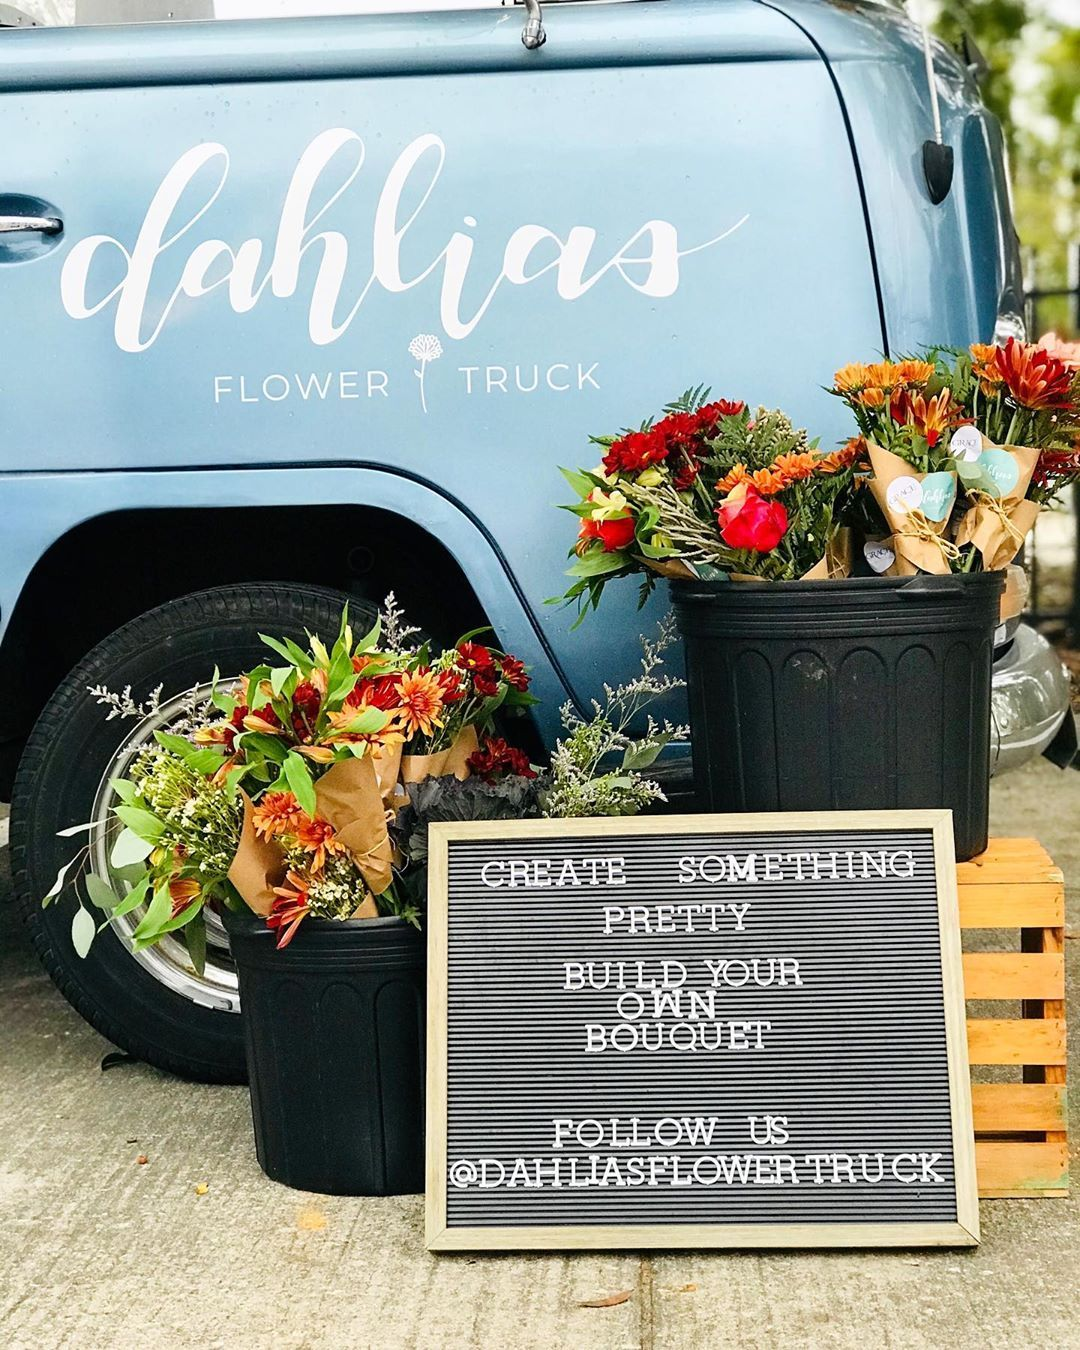 Instagram의 Dahlias Flower Truck님 Come Make A Bouquet With Us For Our Last Pop Up Before Christmas Tomorrow Dec 14 Flower Truck Dahlia Flower Making A Bouquet